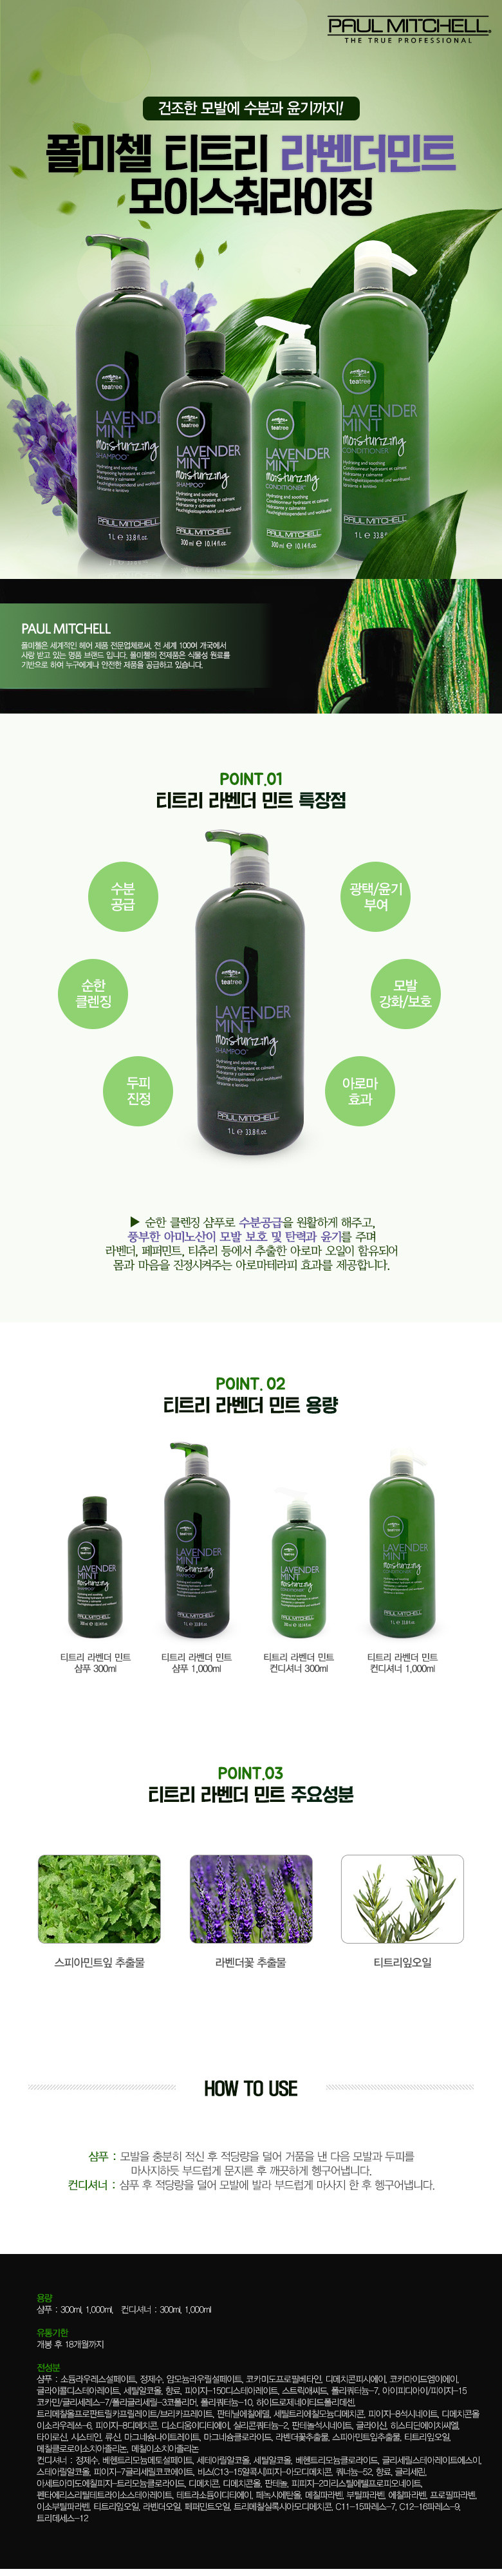 폴미첼 티트리스페셜 샴푸 & 컨디셔너 PAUL MITCHELL Tea Tree Special Shampoo & Conditioner